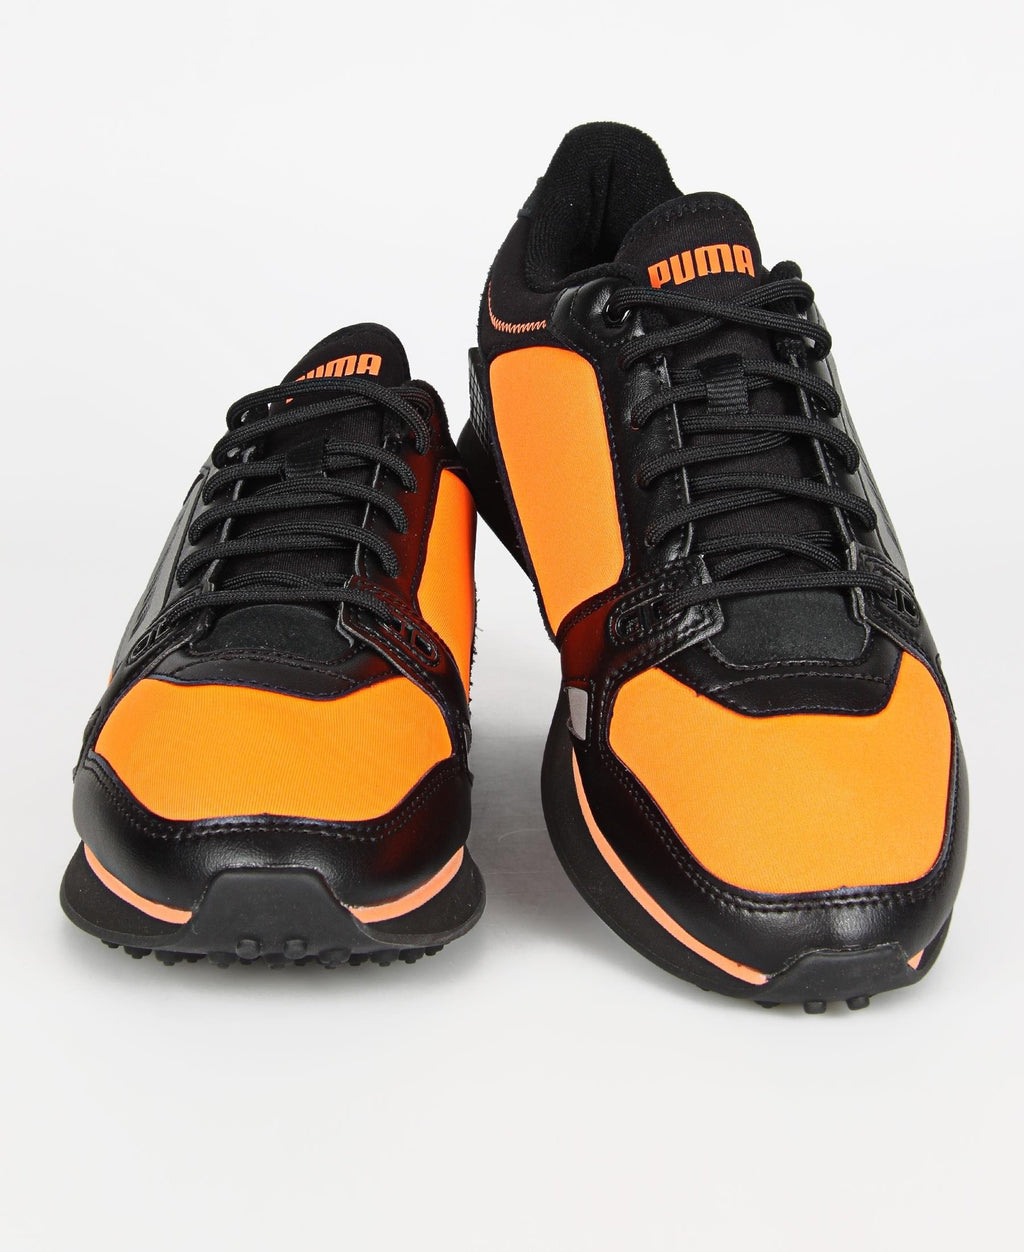 Men's Mile Rider Bright Peaks Sneakers - Orange